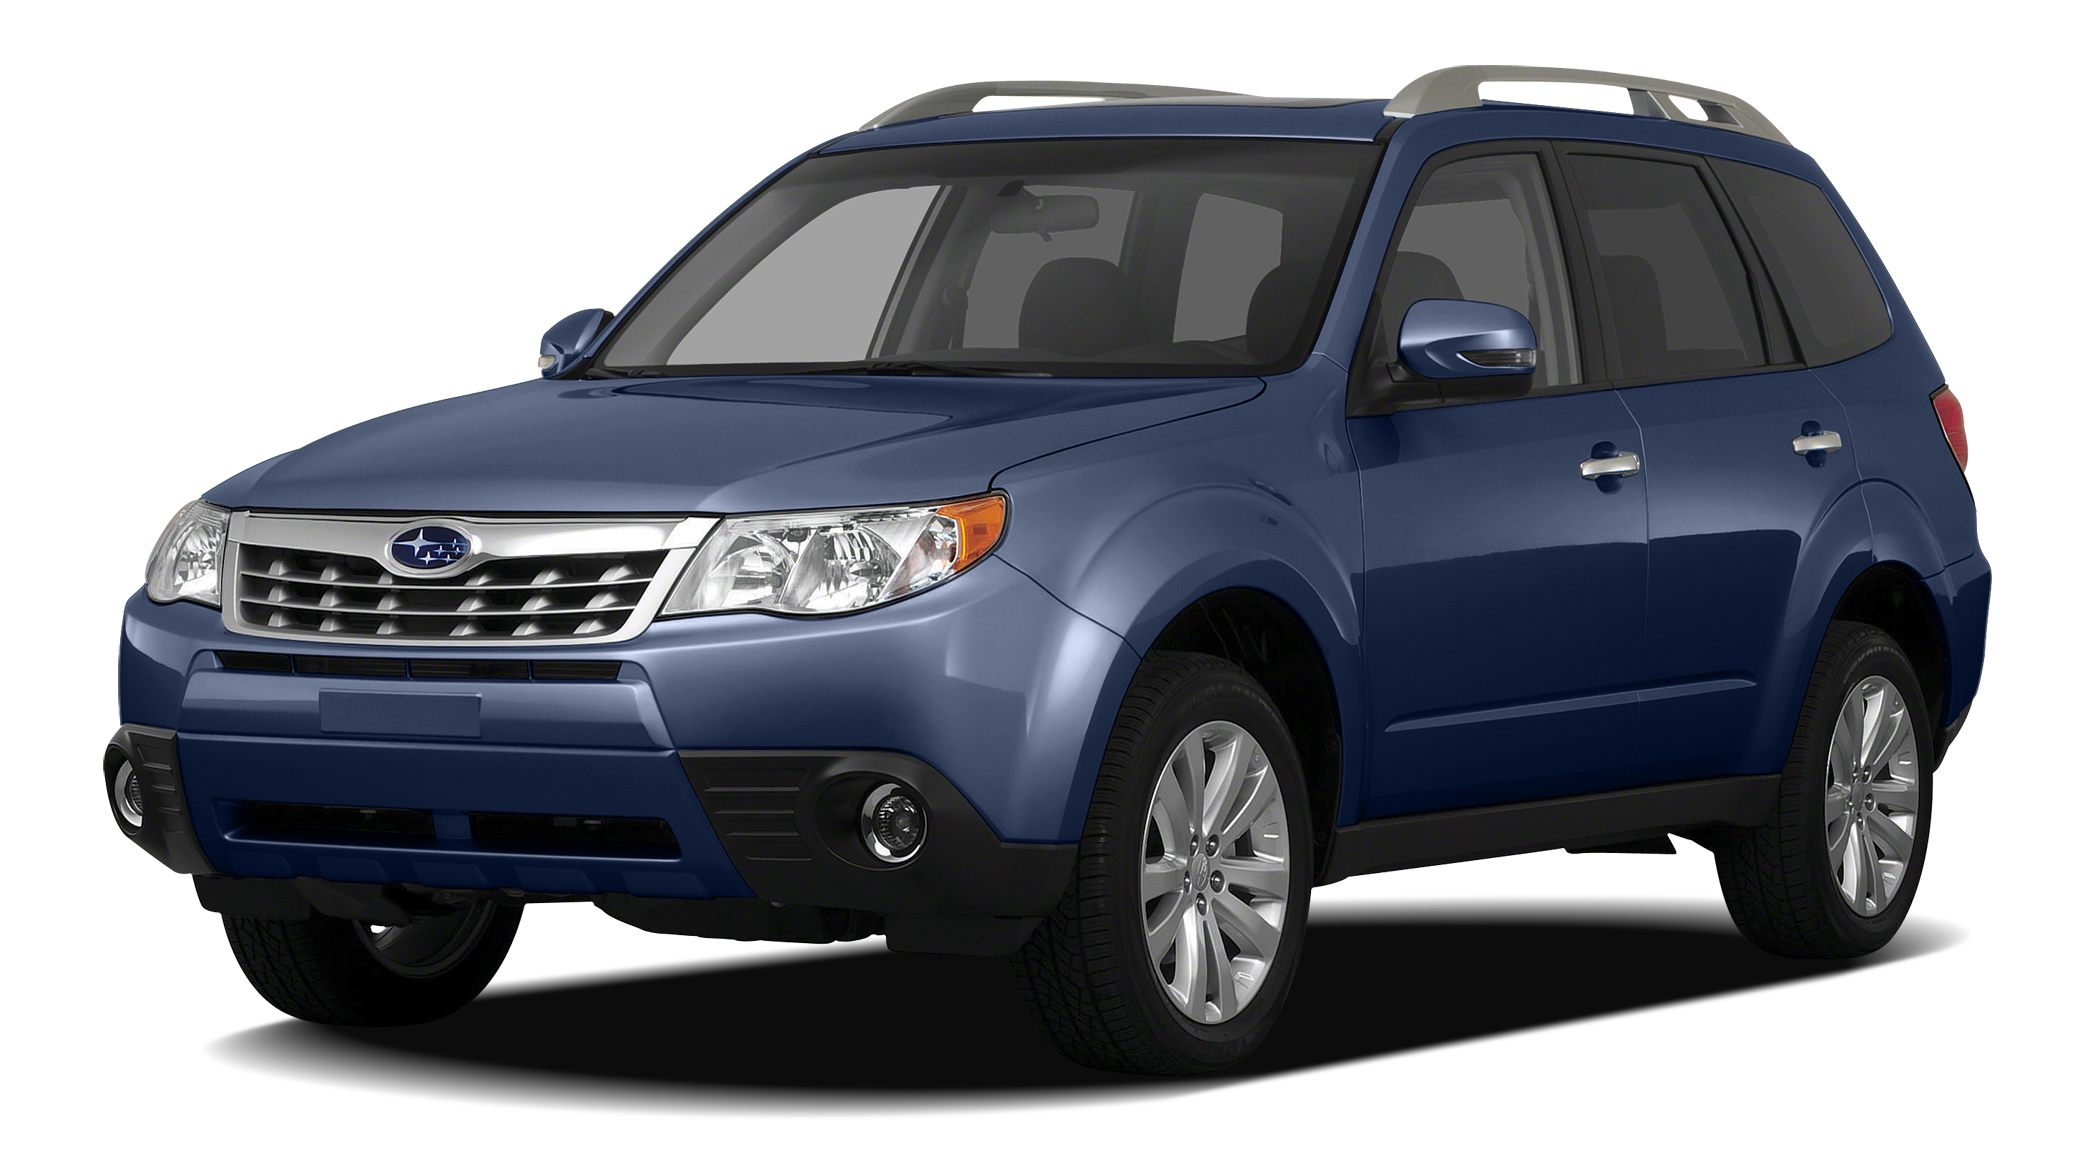 2011 Subaru Forester 25X Premium Miles 51189Color Marine Blue Pearl Stock 151859A VIN JF2SH